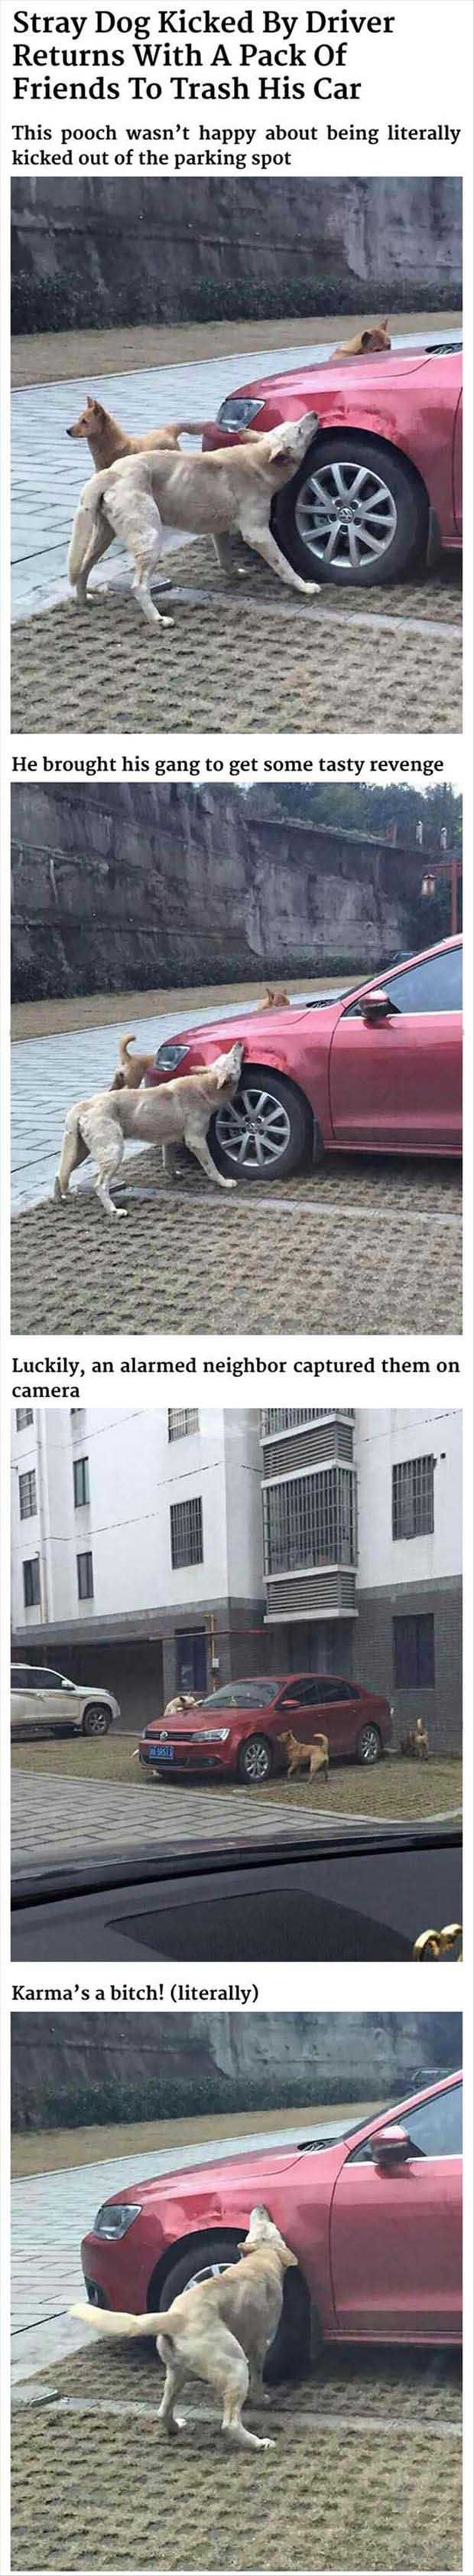 Dog Gets Revenge On Man Who Kicked Him - 4 Pics: Awesome Dogs, Revenge, Funny Stuff, Humor, Boys Funny, Cute Funny Dogs, Man